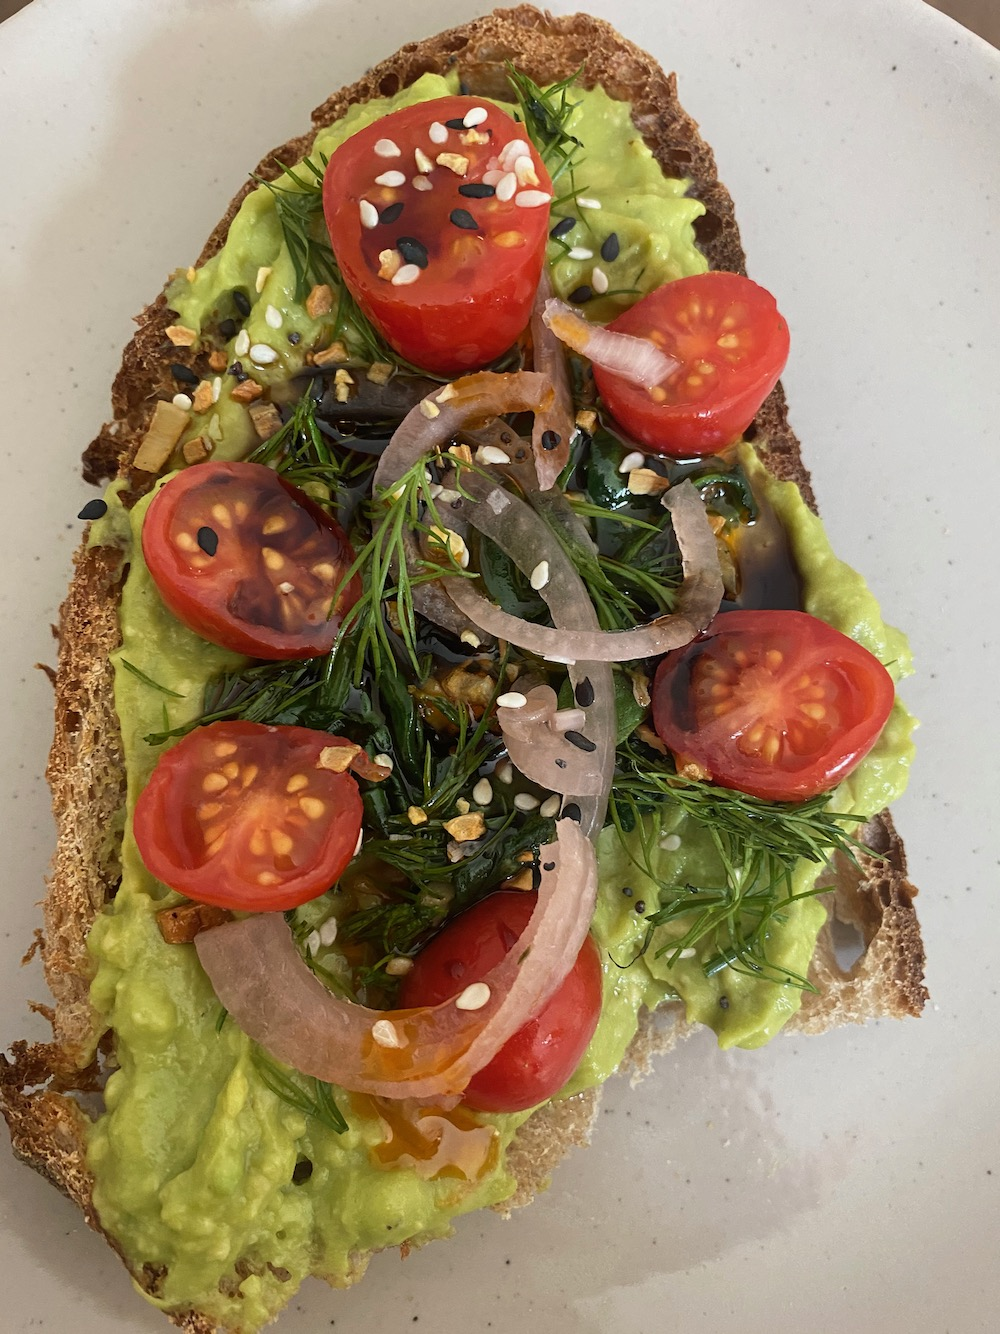 Fancy avocado toast without an egg.